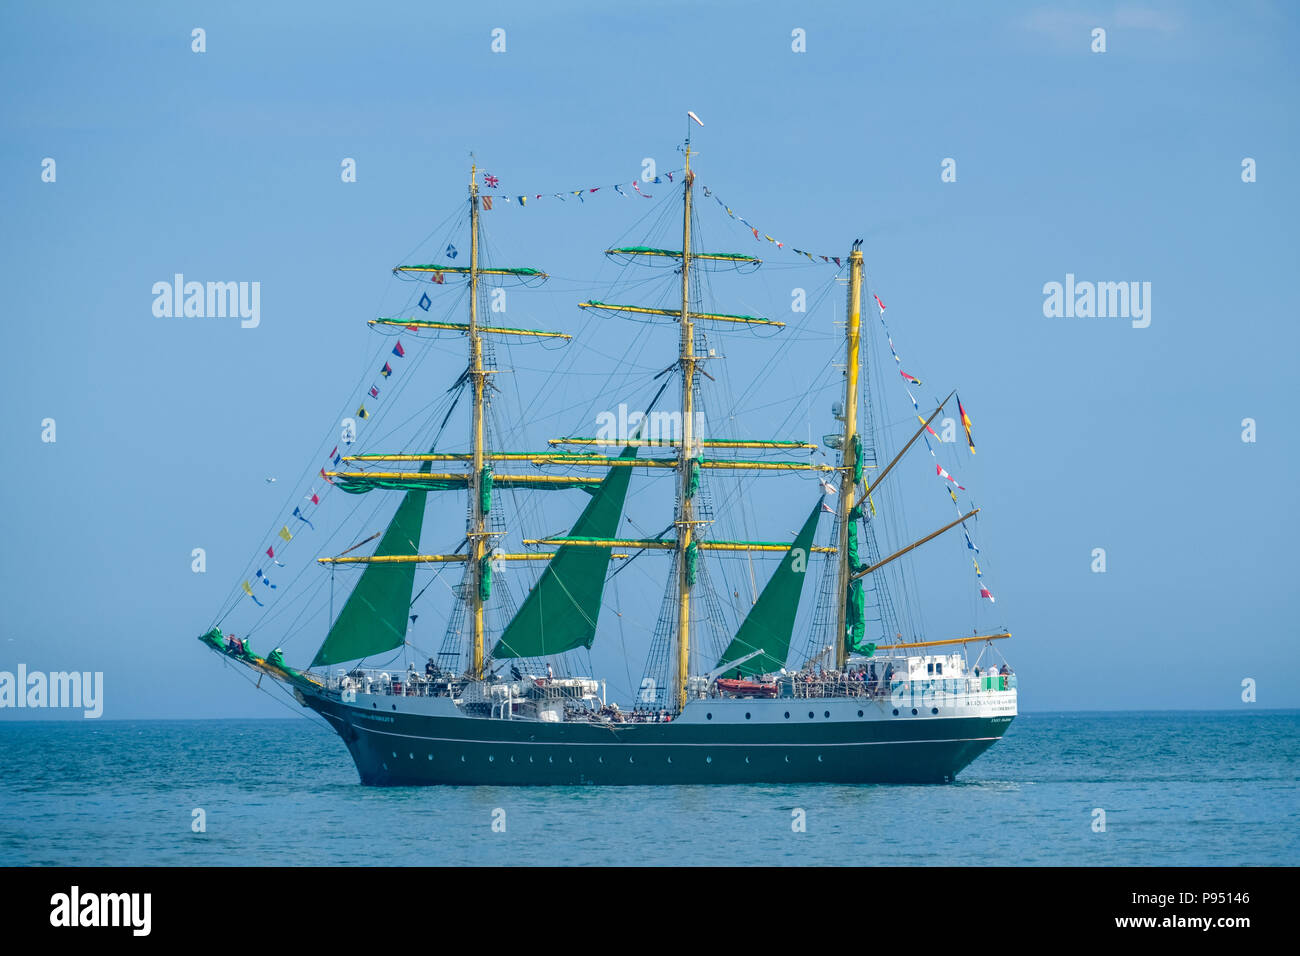 Sunderland, UK. 14th July 2018. The Alexander von Humboldt leaving the Port of Sunderland as part of the Tall Ships Race 2018  Credit: Tim Withnall/Alamy Live News - Stock Image